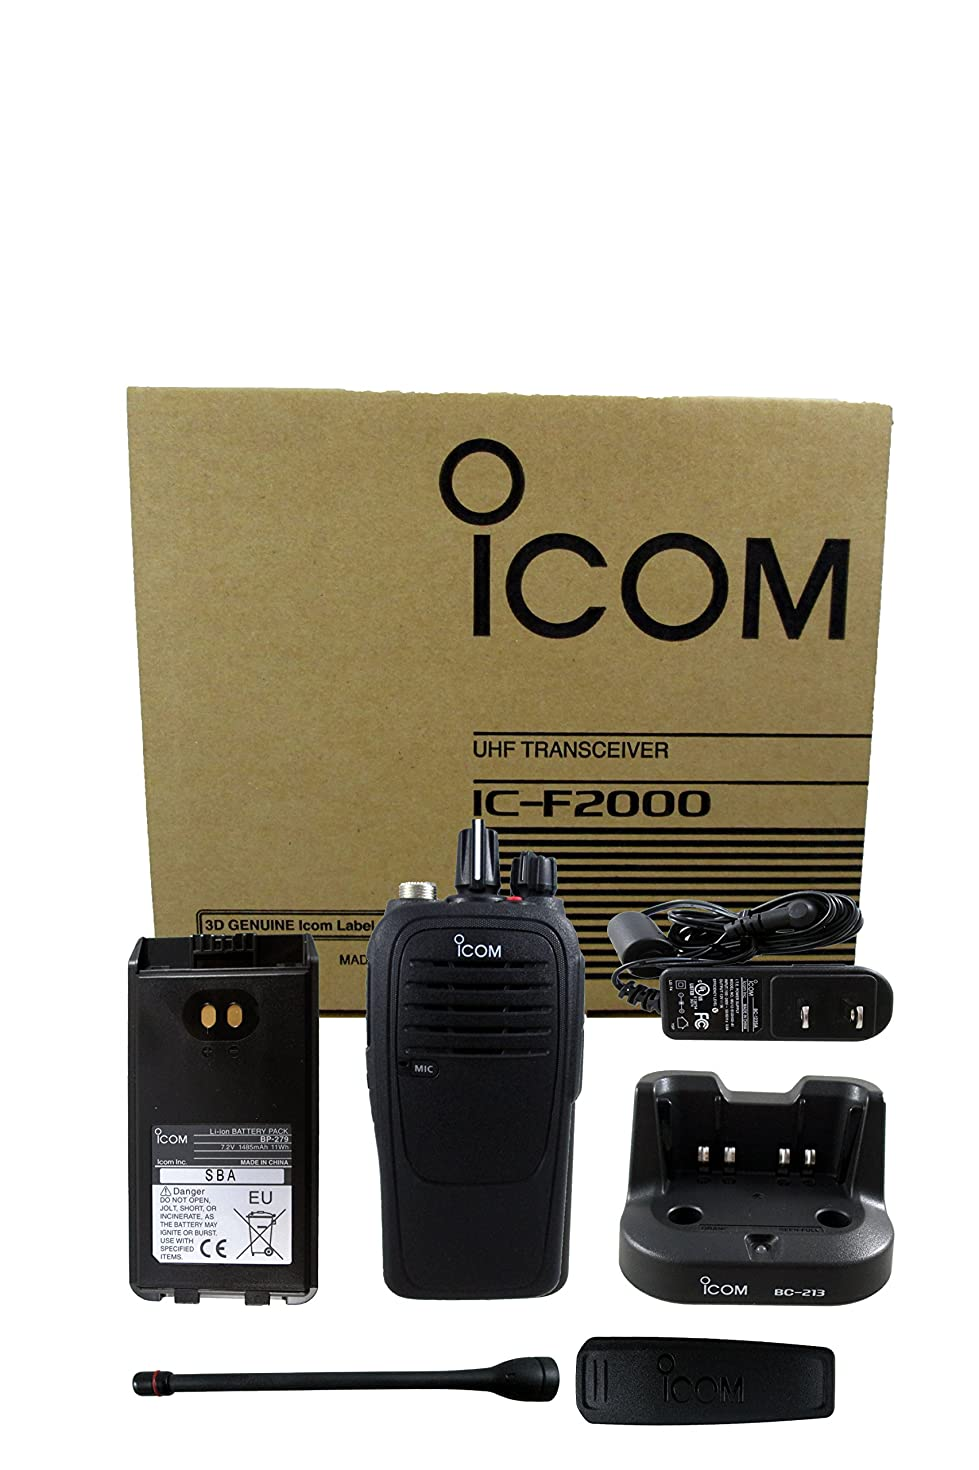 Icom IC-F2000 01 BC-213 4 watt 16 channel UHF 400-470mhz two way radio with charger complete accessories kit